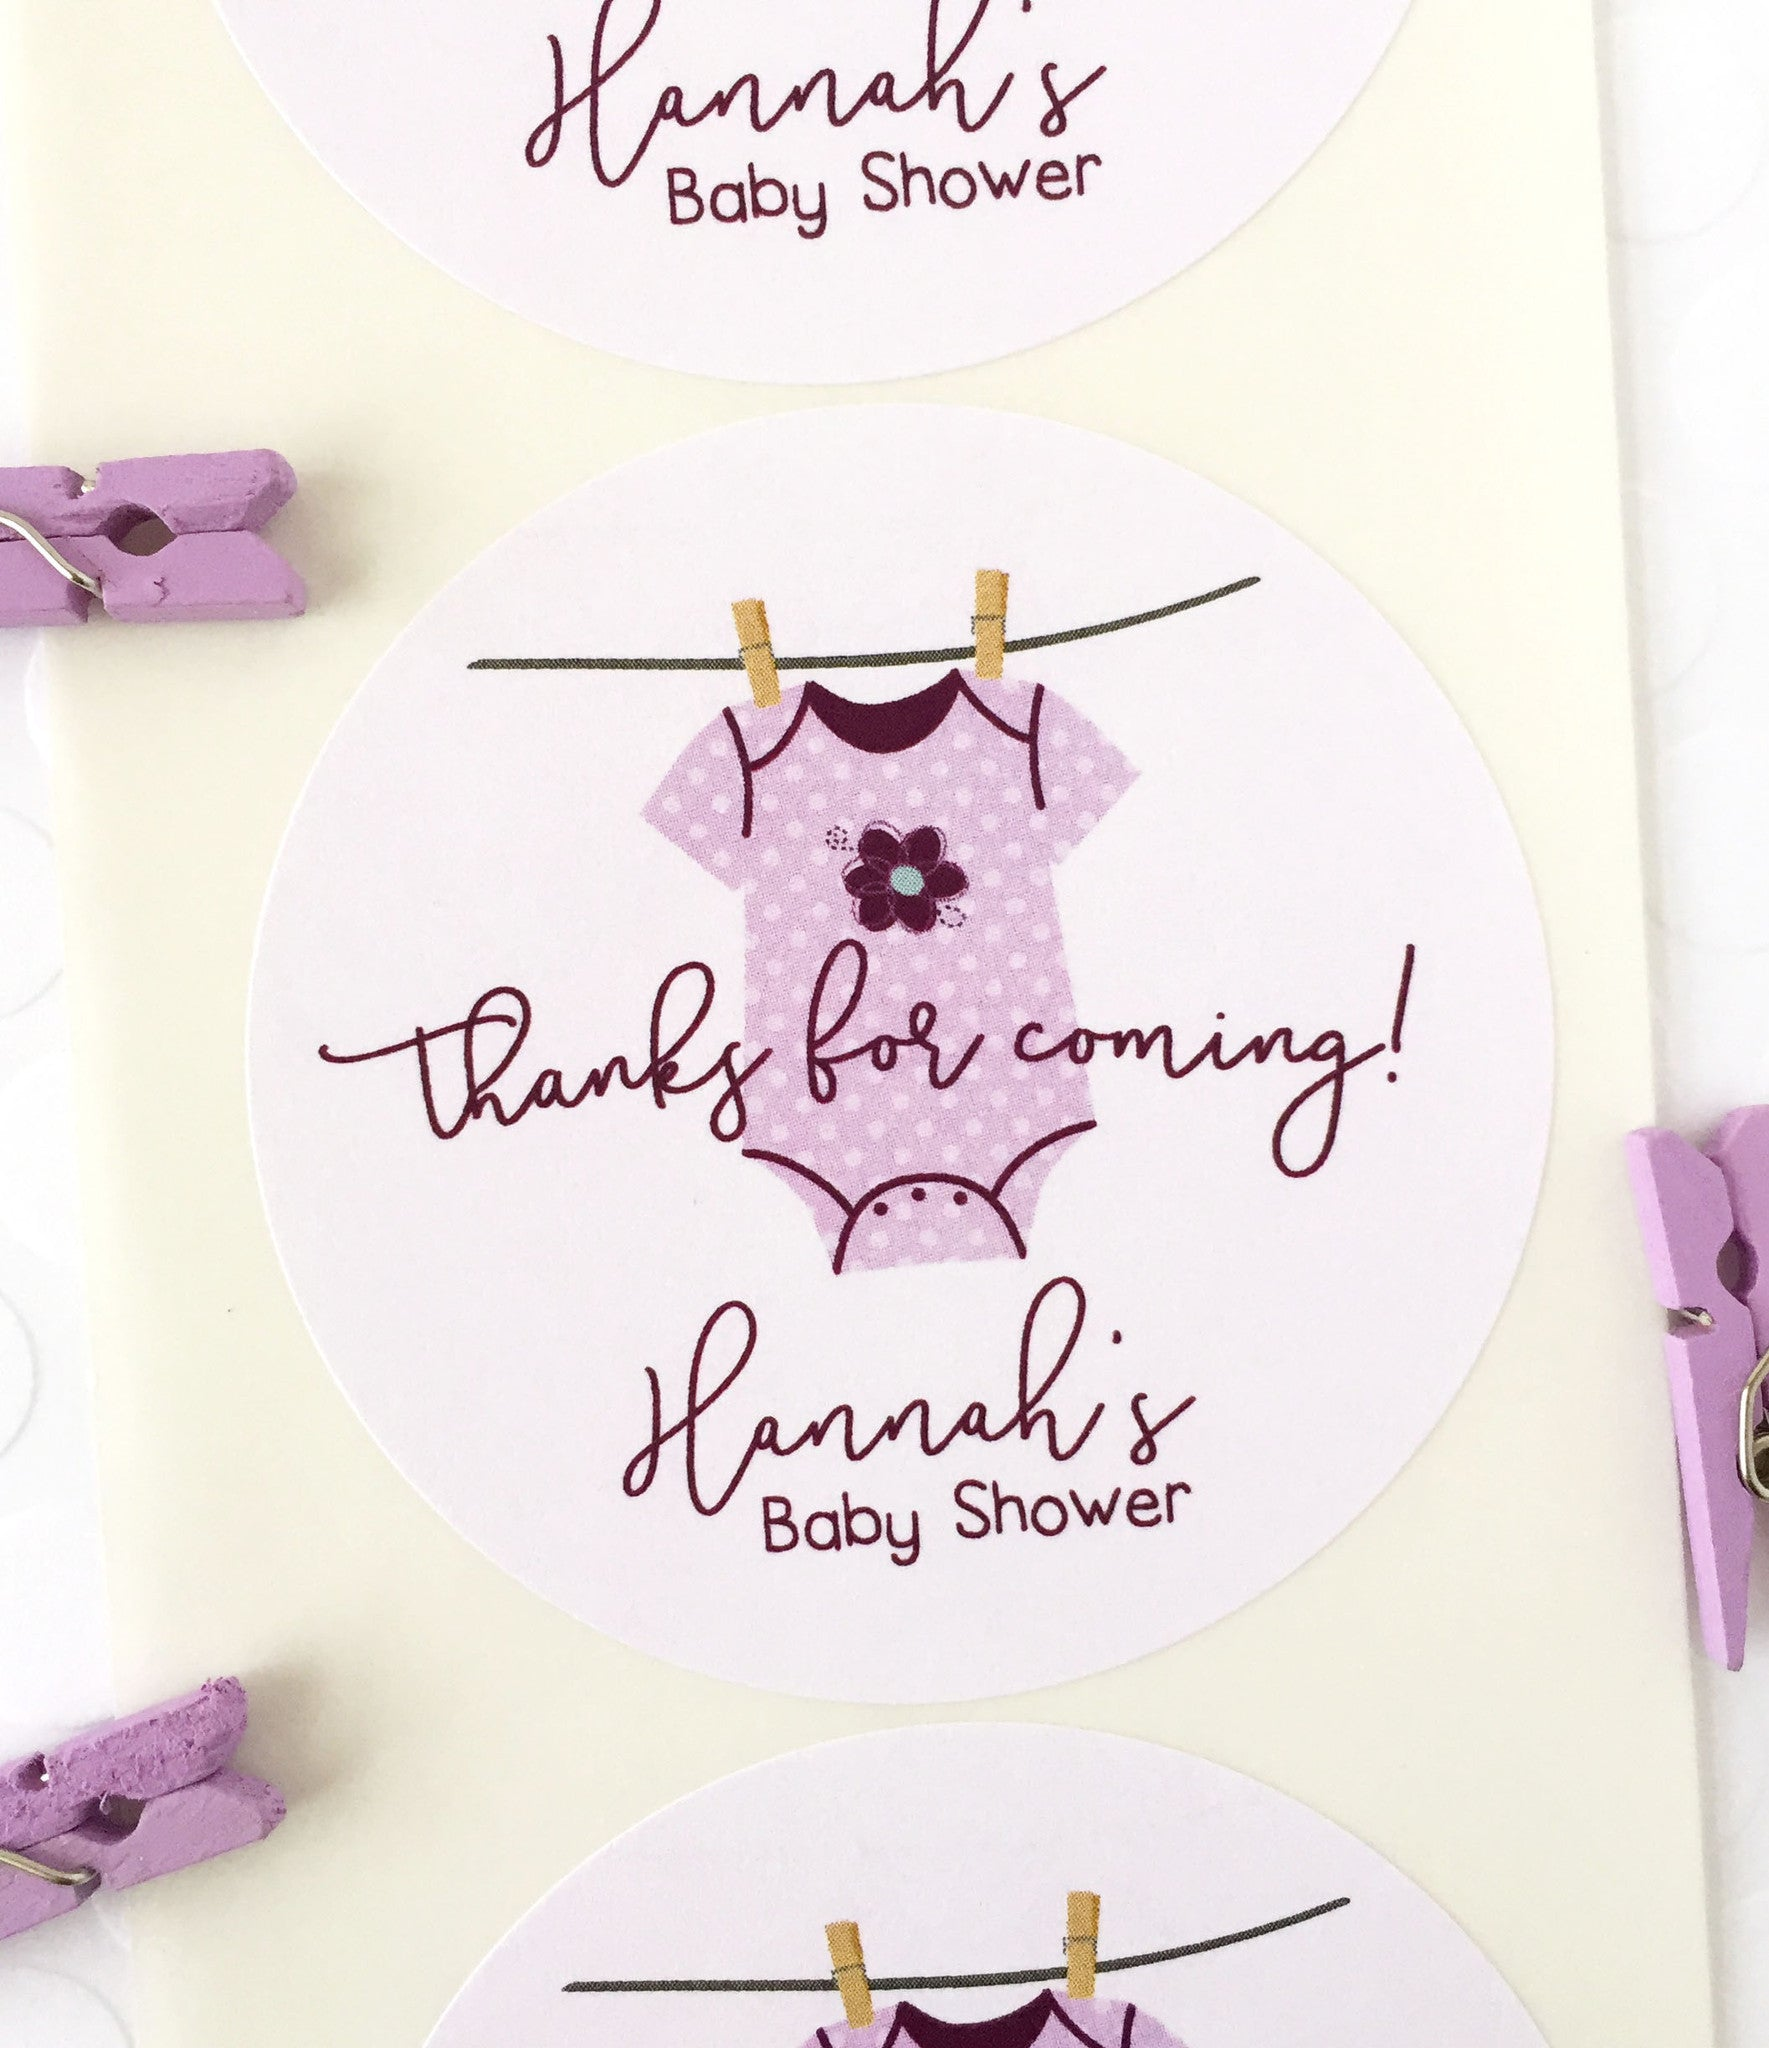 Clothesline Baby Shower Thank You Gift Sticker for Girl - Invited Too